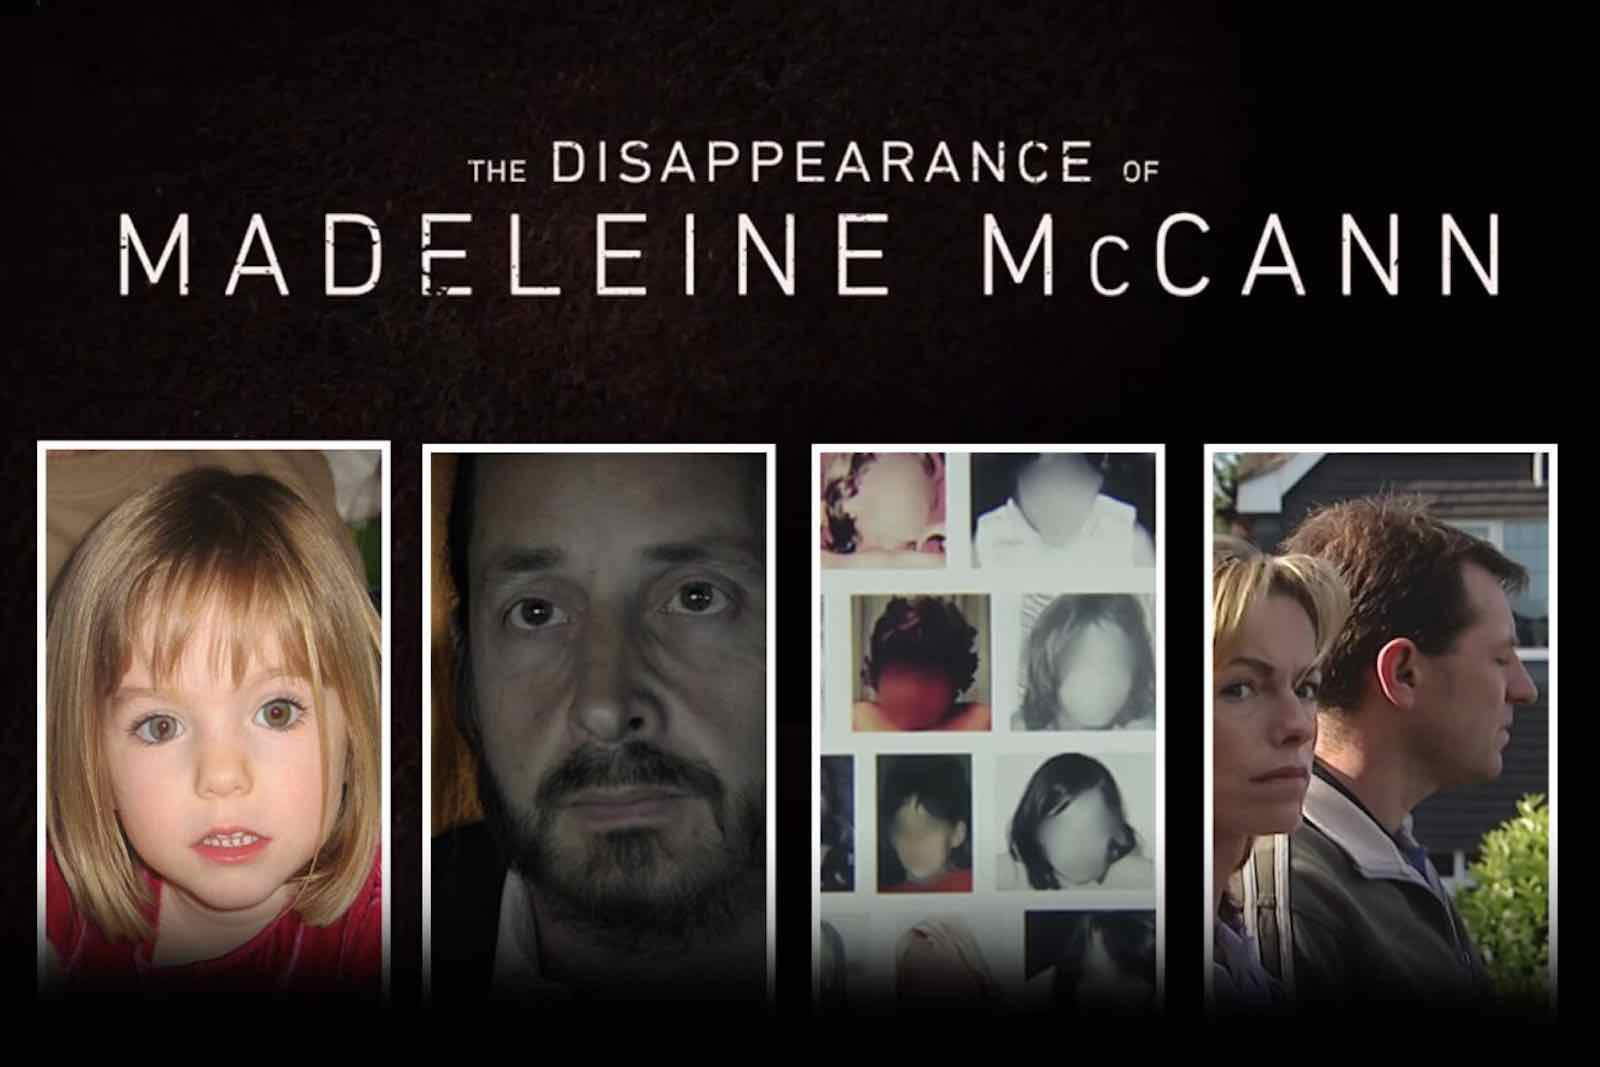 Film Daily 'Netflix' critique: 'The Disappearance of Madeleine McCann': Saddest true crime ever? The-Disappearance-of-Madeleine-McCann-7